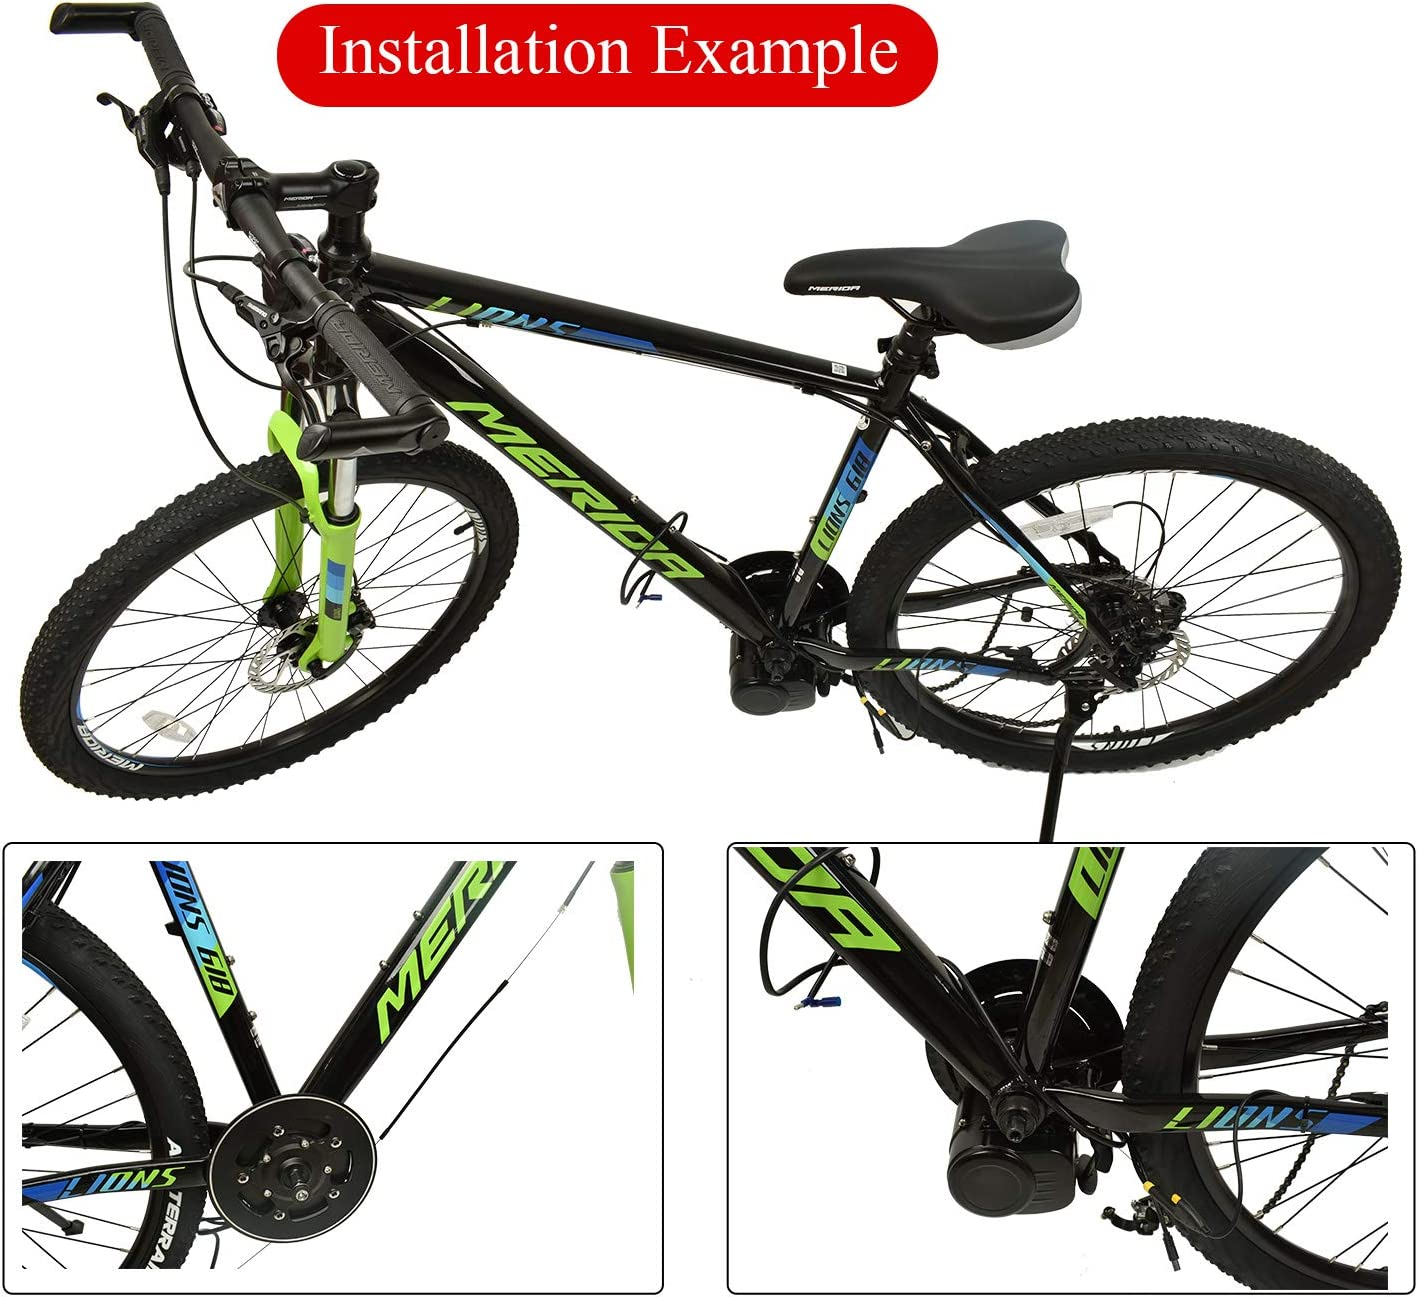 Pswpower 36V 250W// 350W// TSDZ2 Electric Bicycle Central Mid Motor with Torque Sensor and VLCD5// XH-18 LCD Display AD Germany warehouse